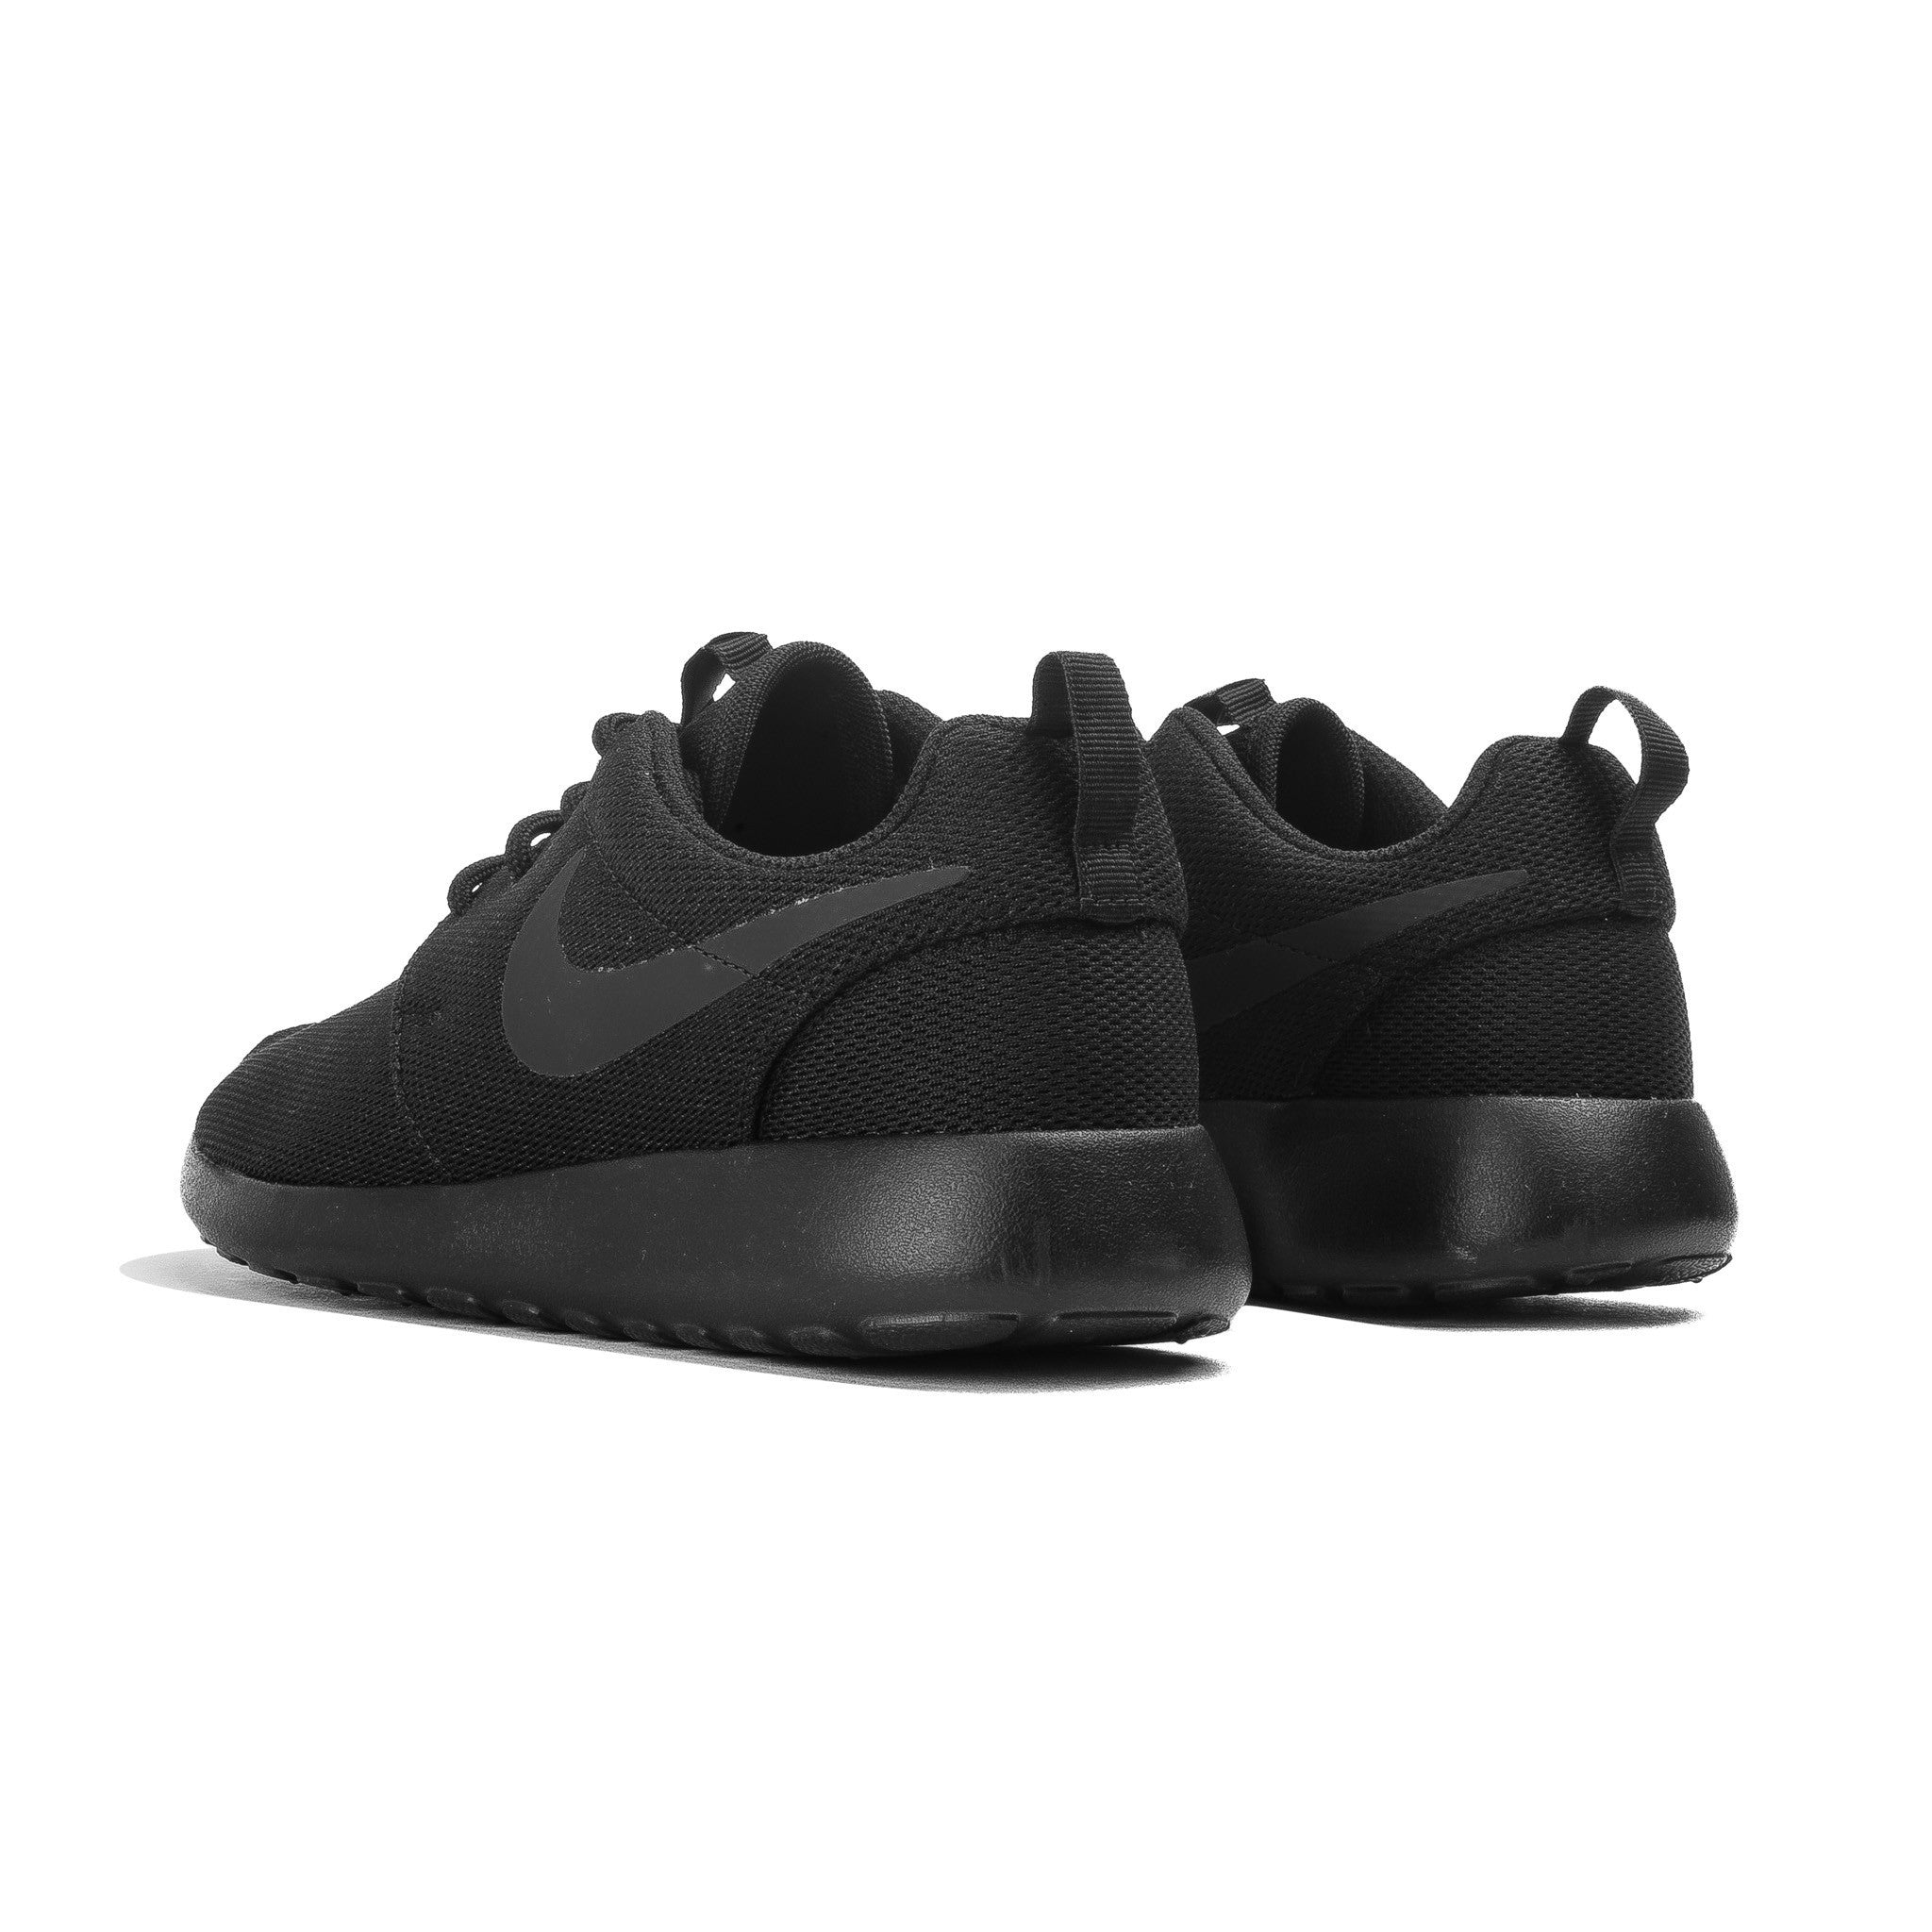 W Roshe One 844994-001 Black